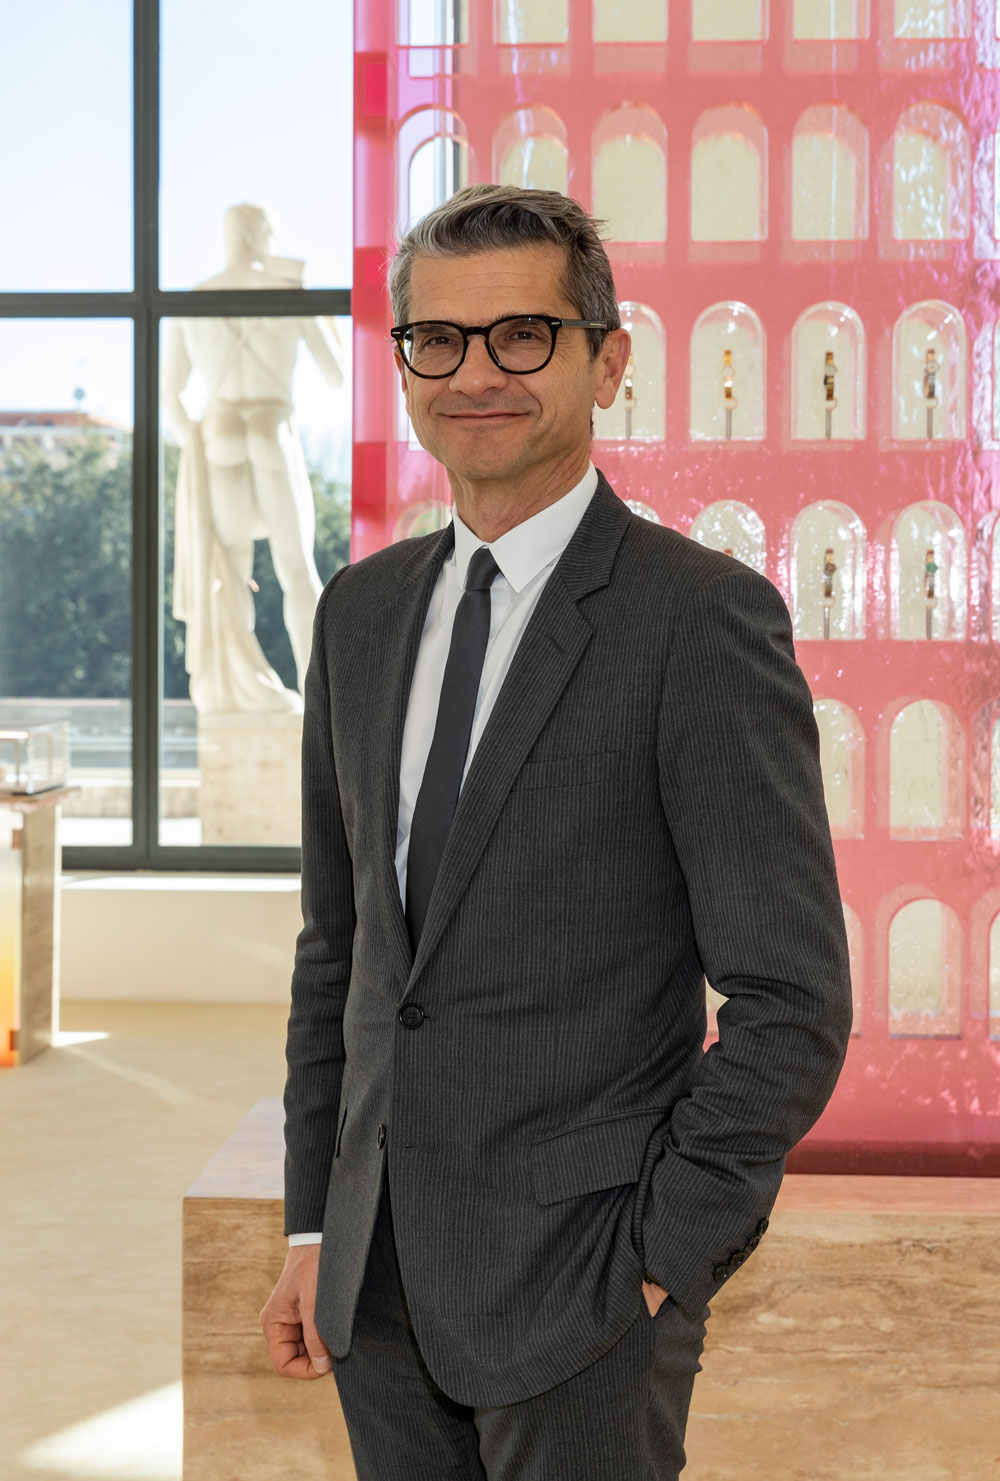 Fendi CEO and Chairman Serge Brunschwig chats to A&E about the past, present and future of watchmaking within the brand